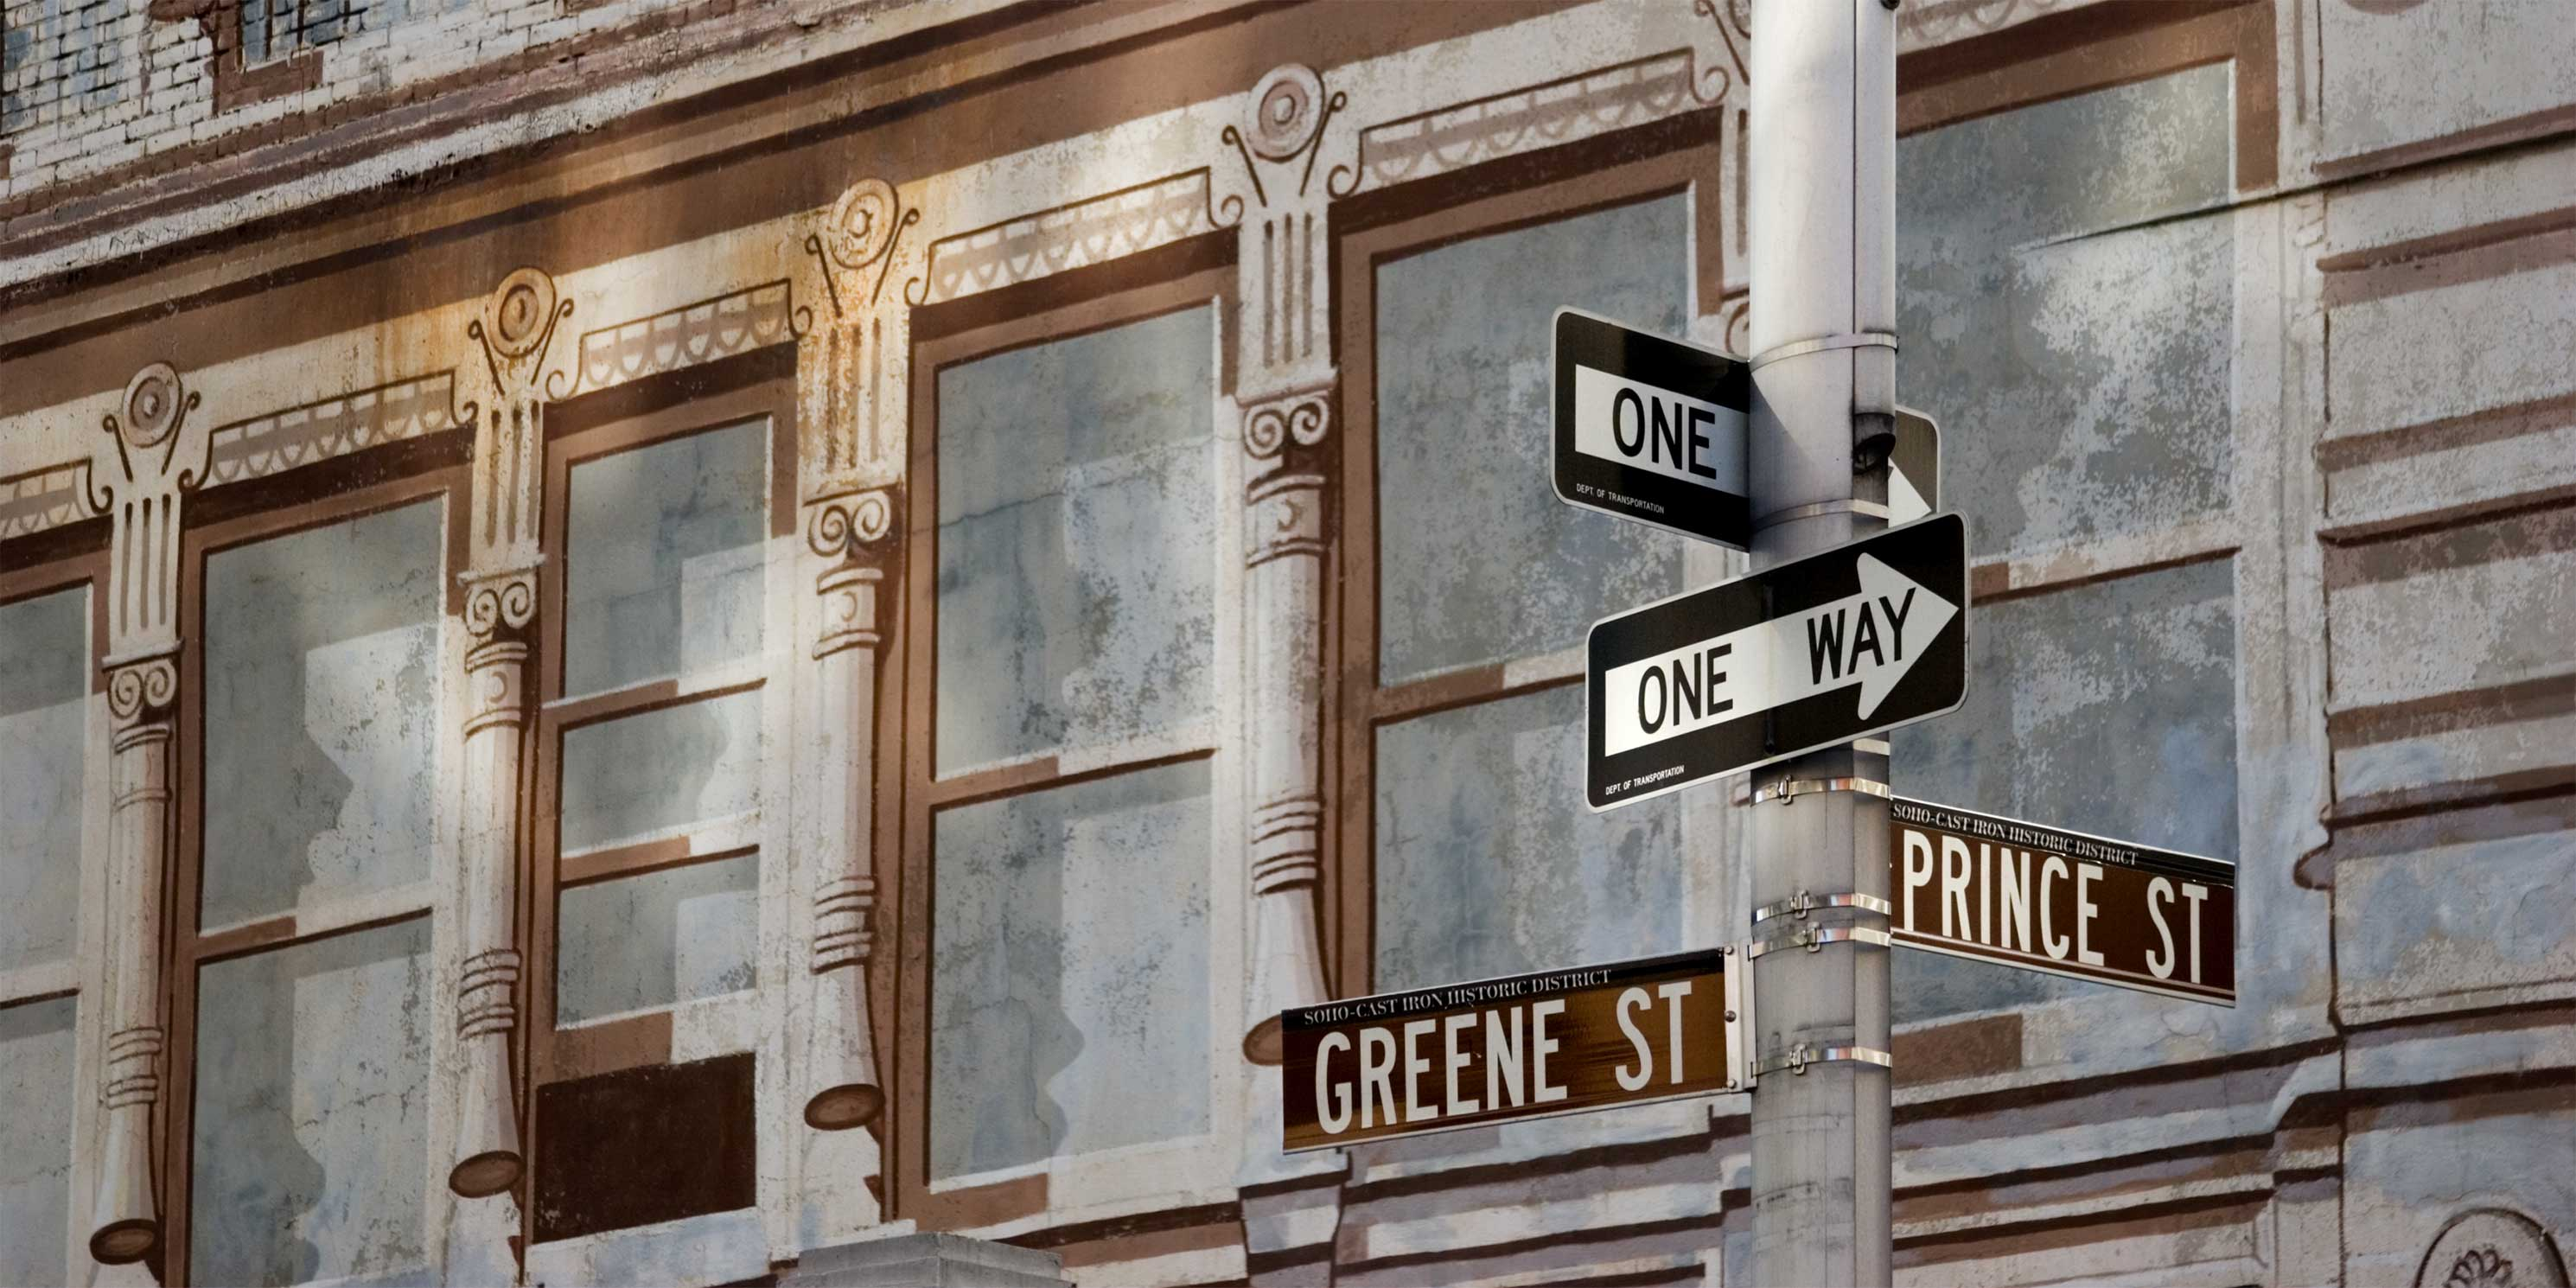 street signs for Greene Street and Prince Street